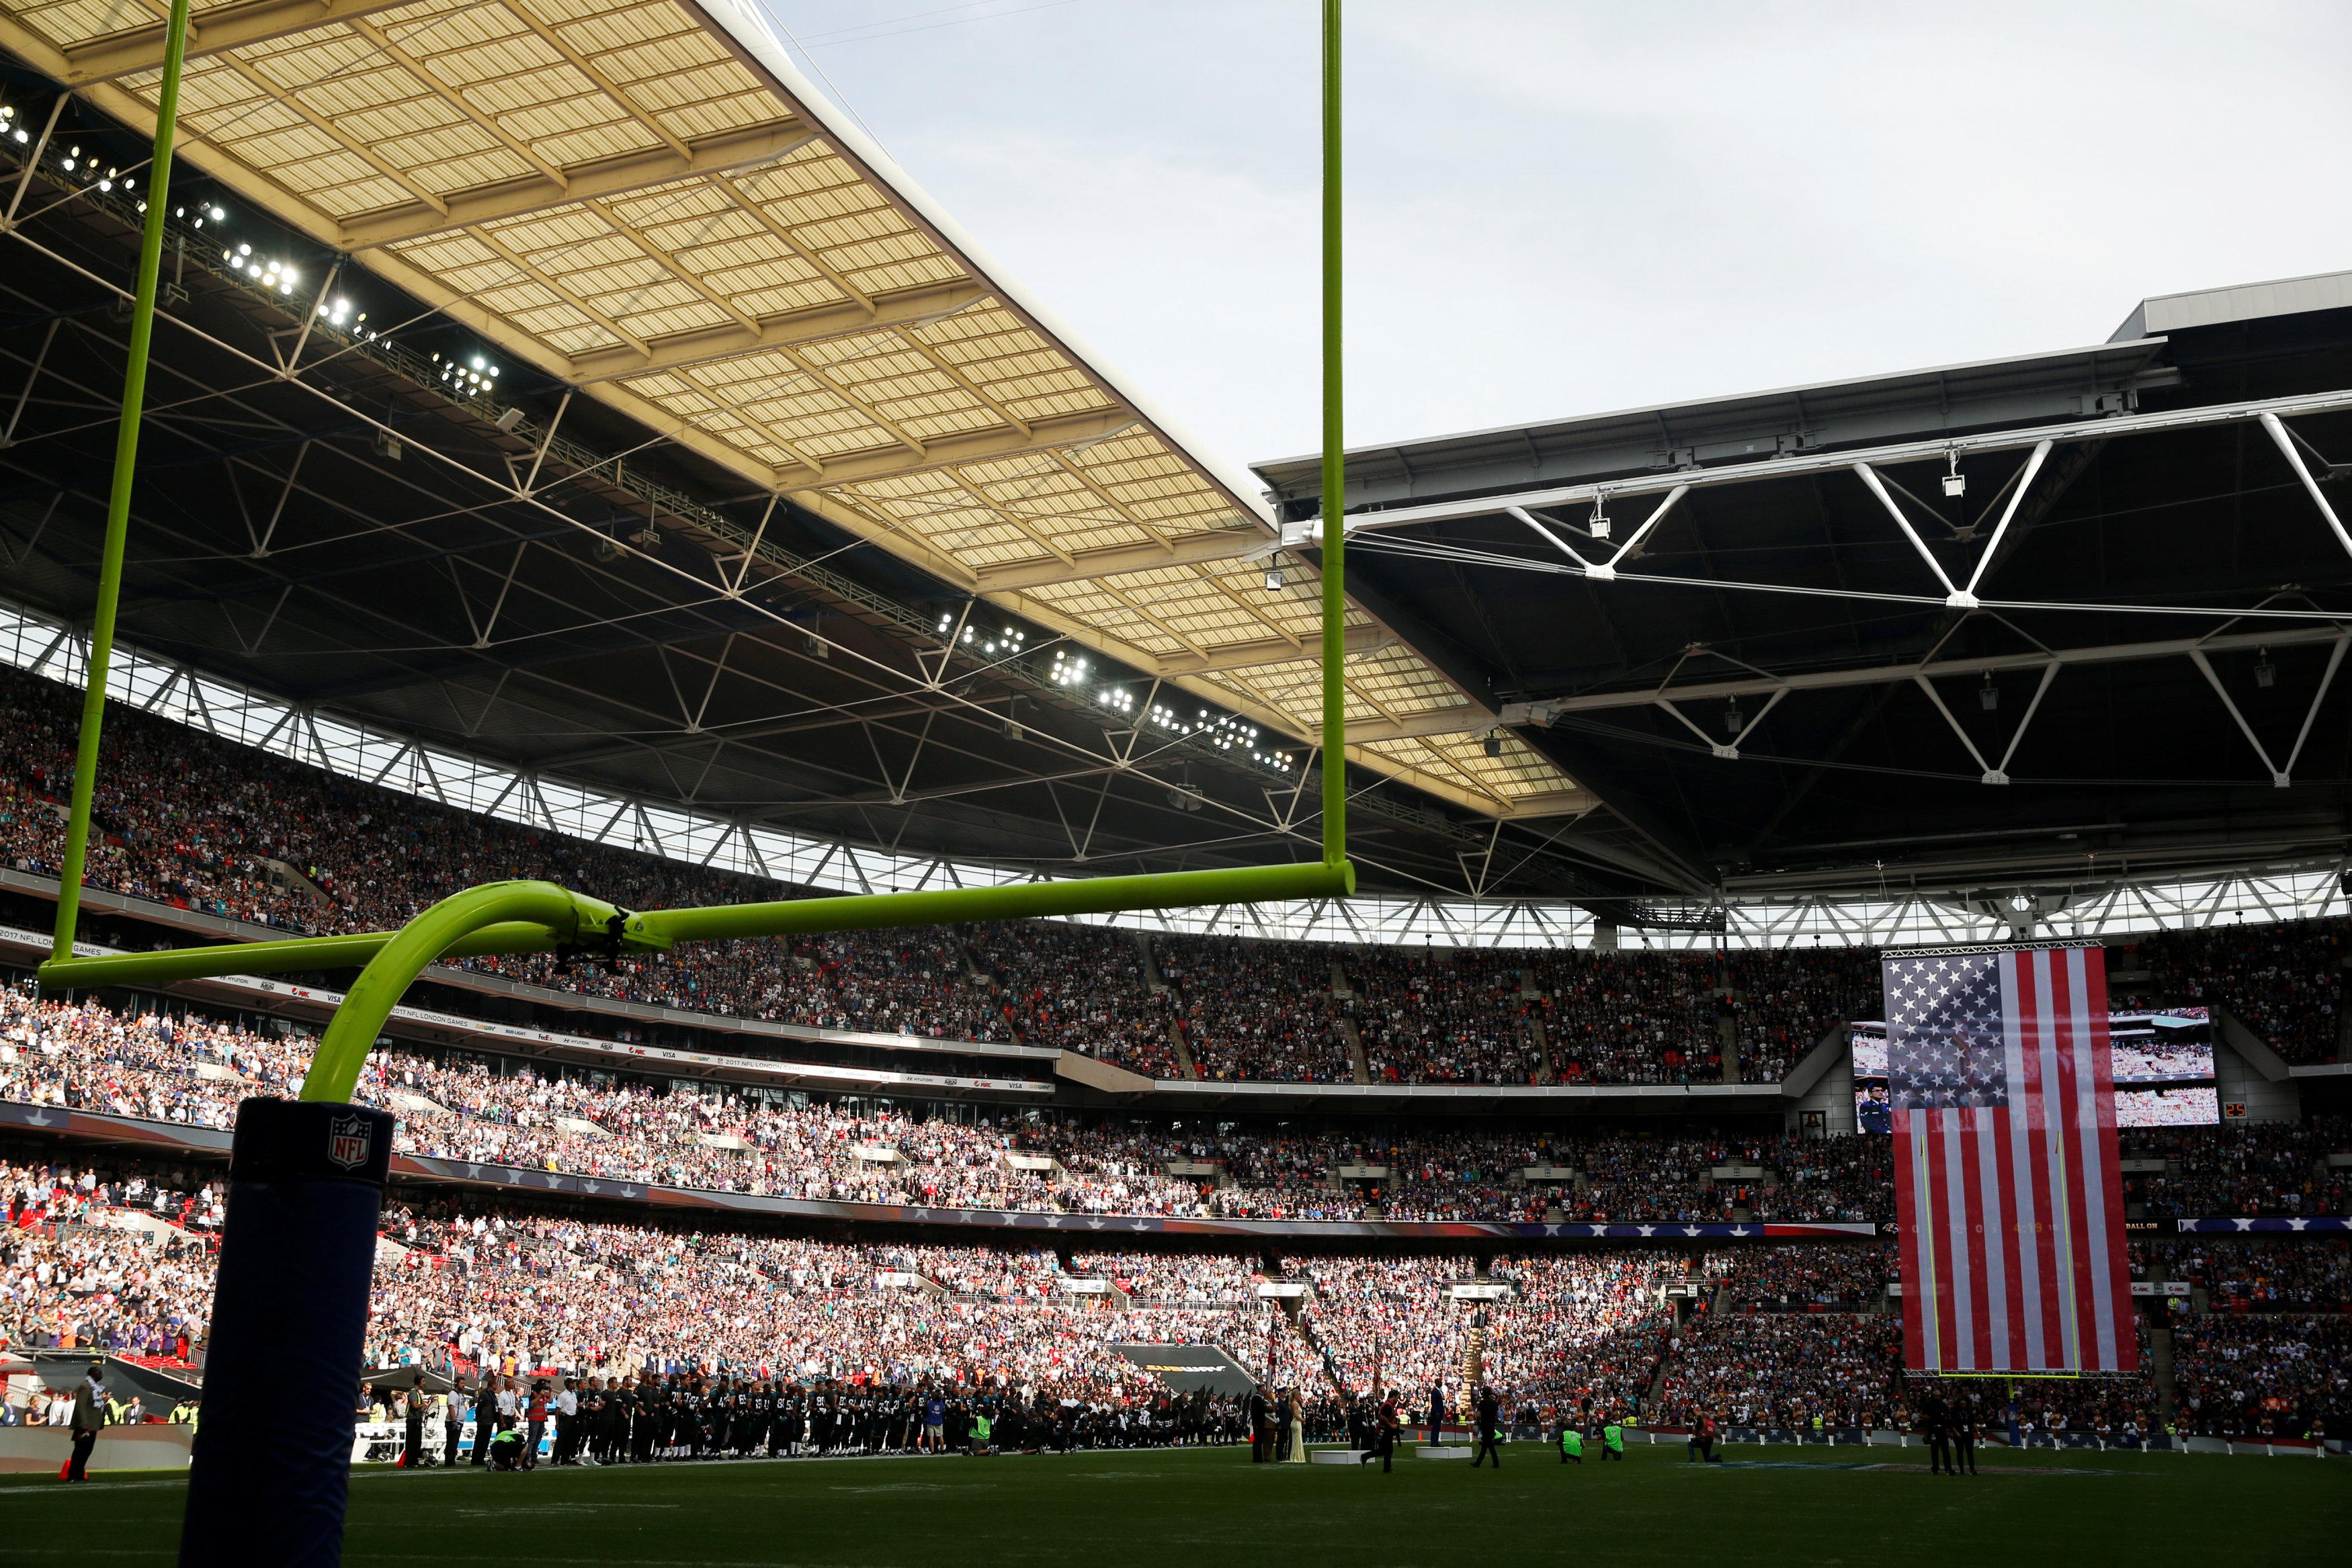 Wembley looked spectacular in the September sunshine as the latest round of NFL games arrived in London